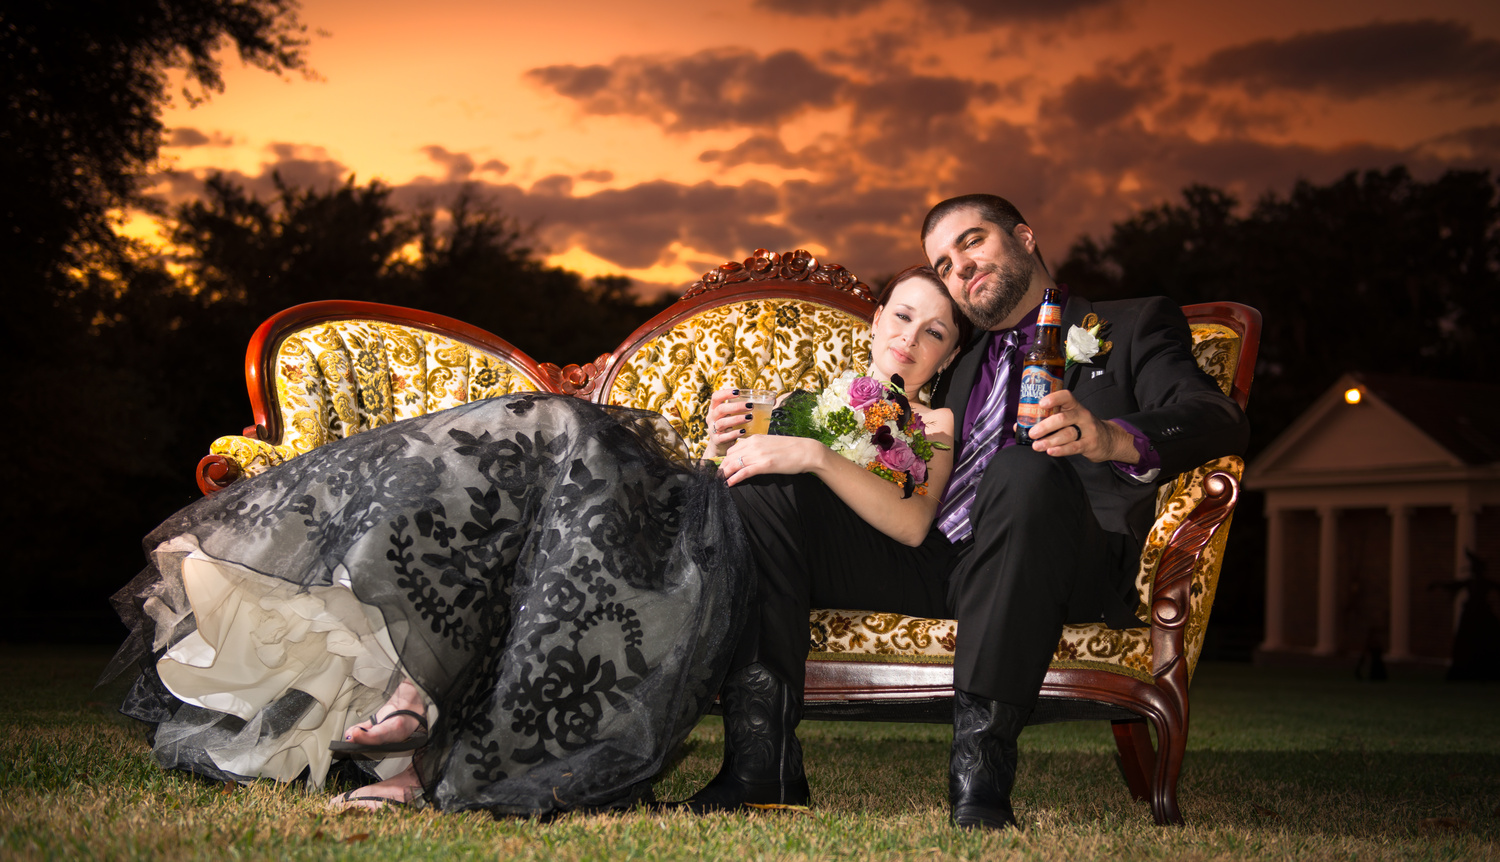 Sunset Wedding by Vince Smith